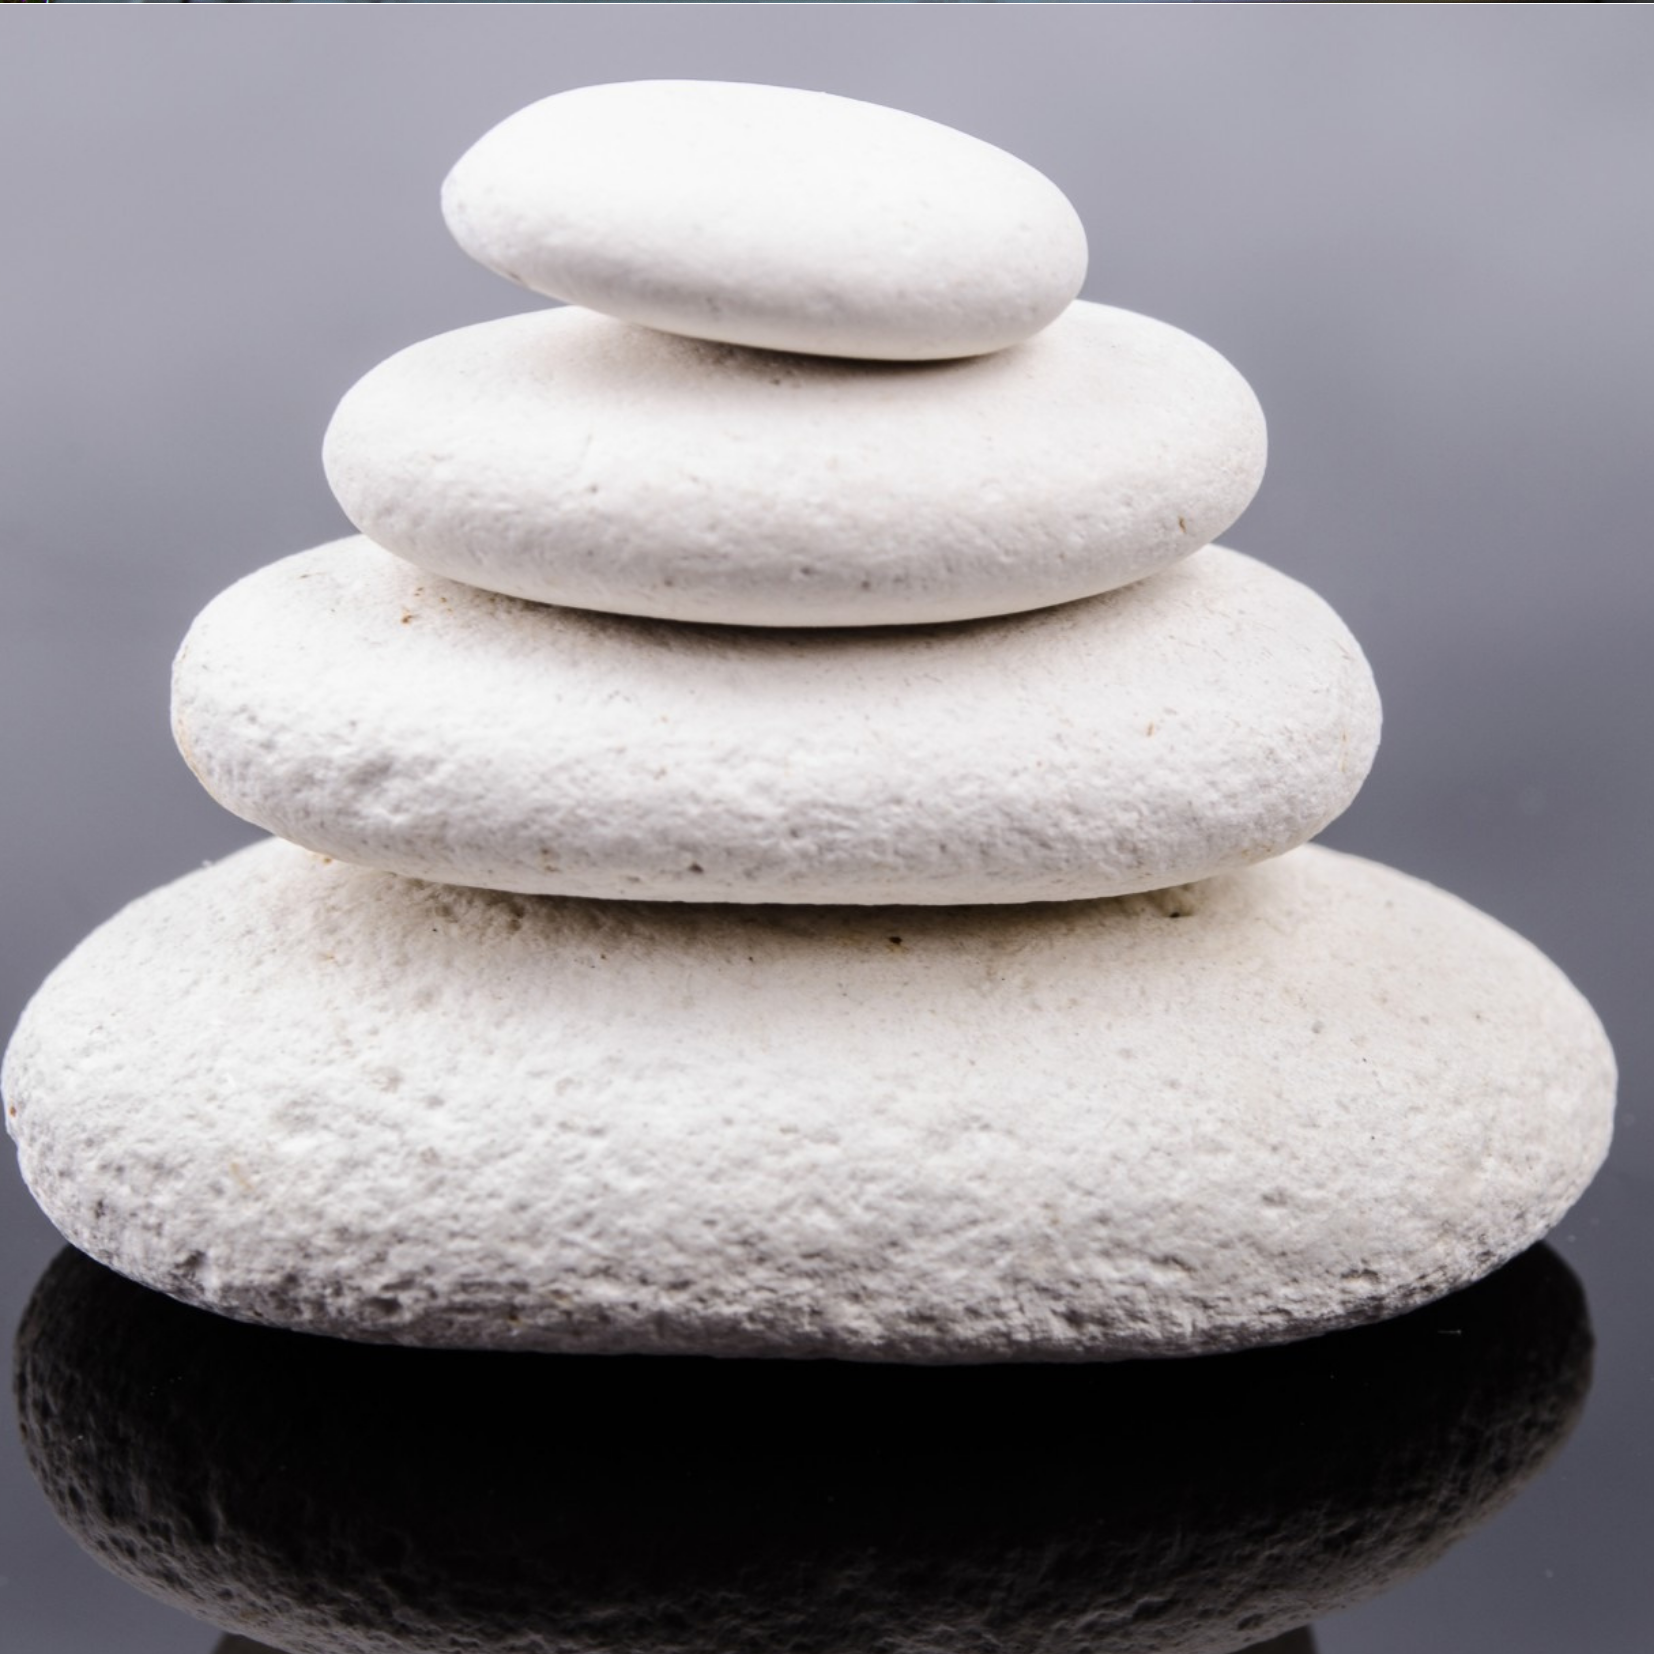 White Rocks Stacked depicting Weight & Body Concerns